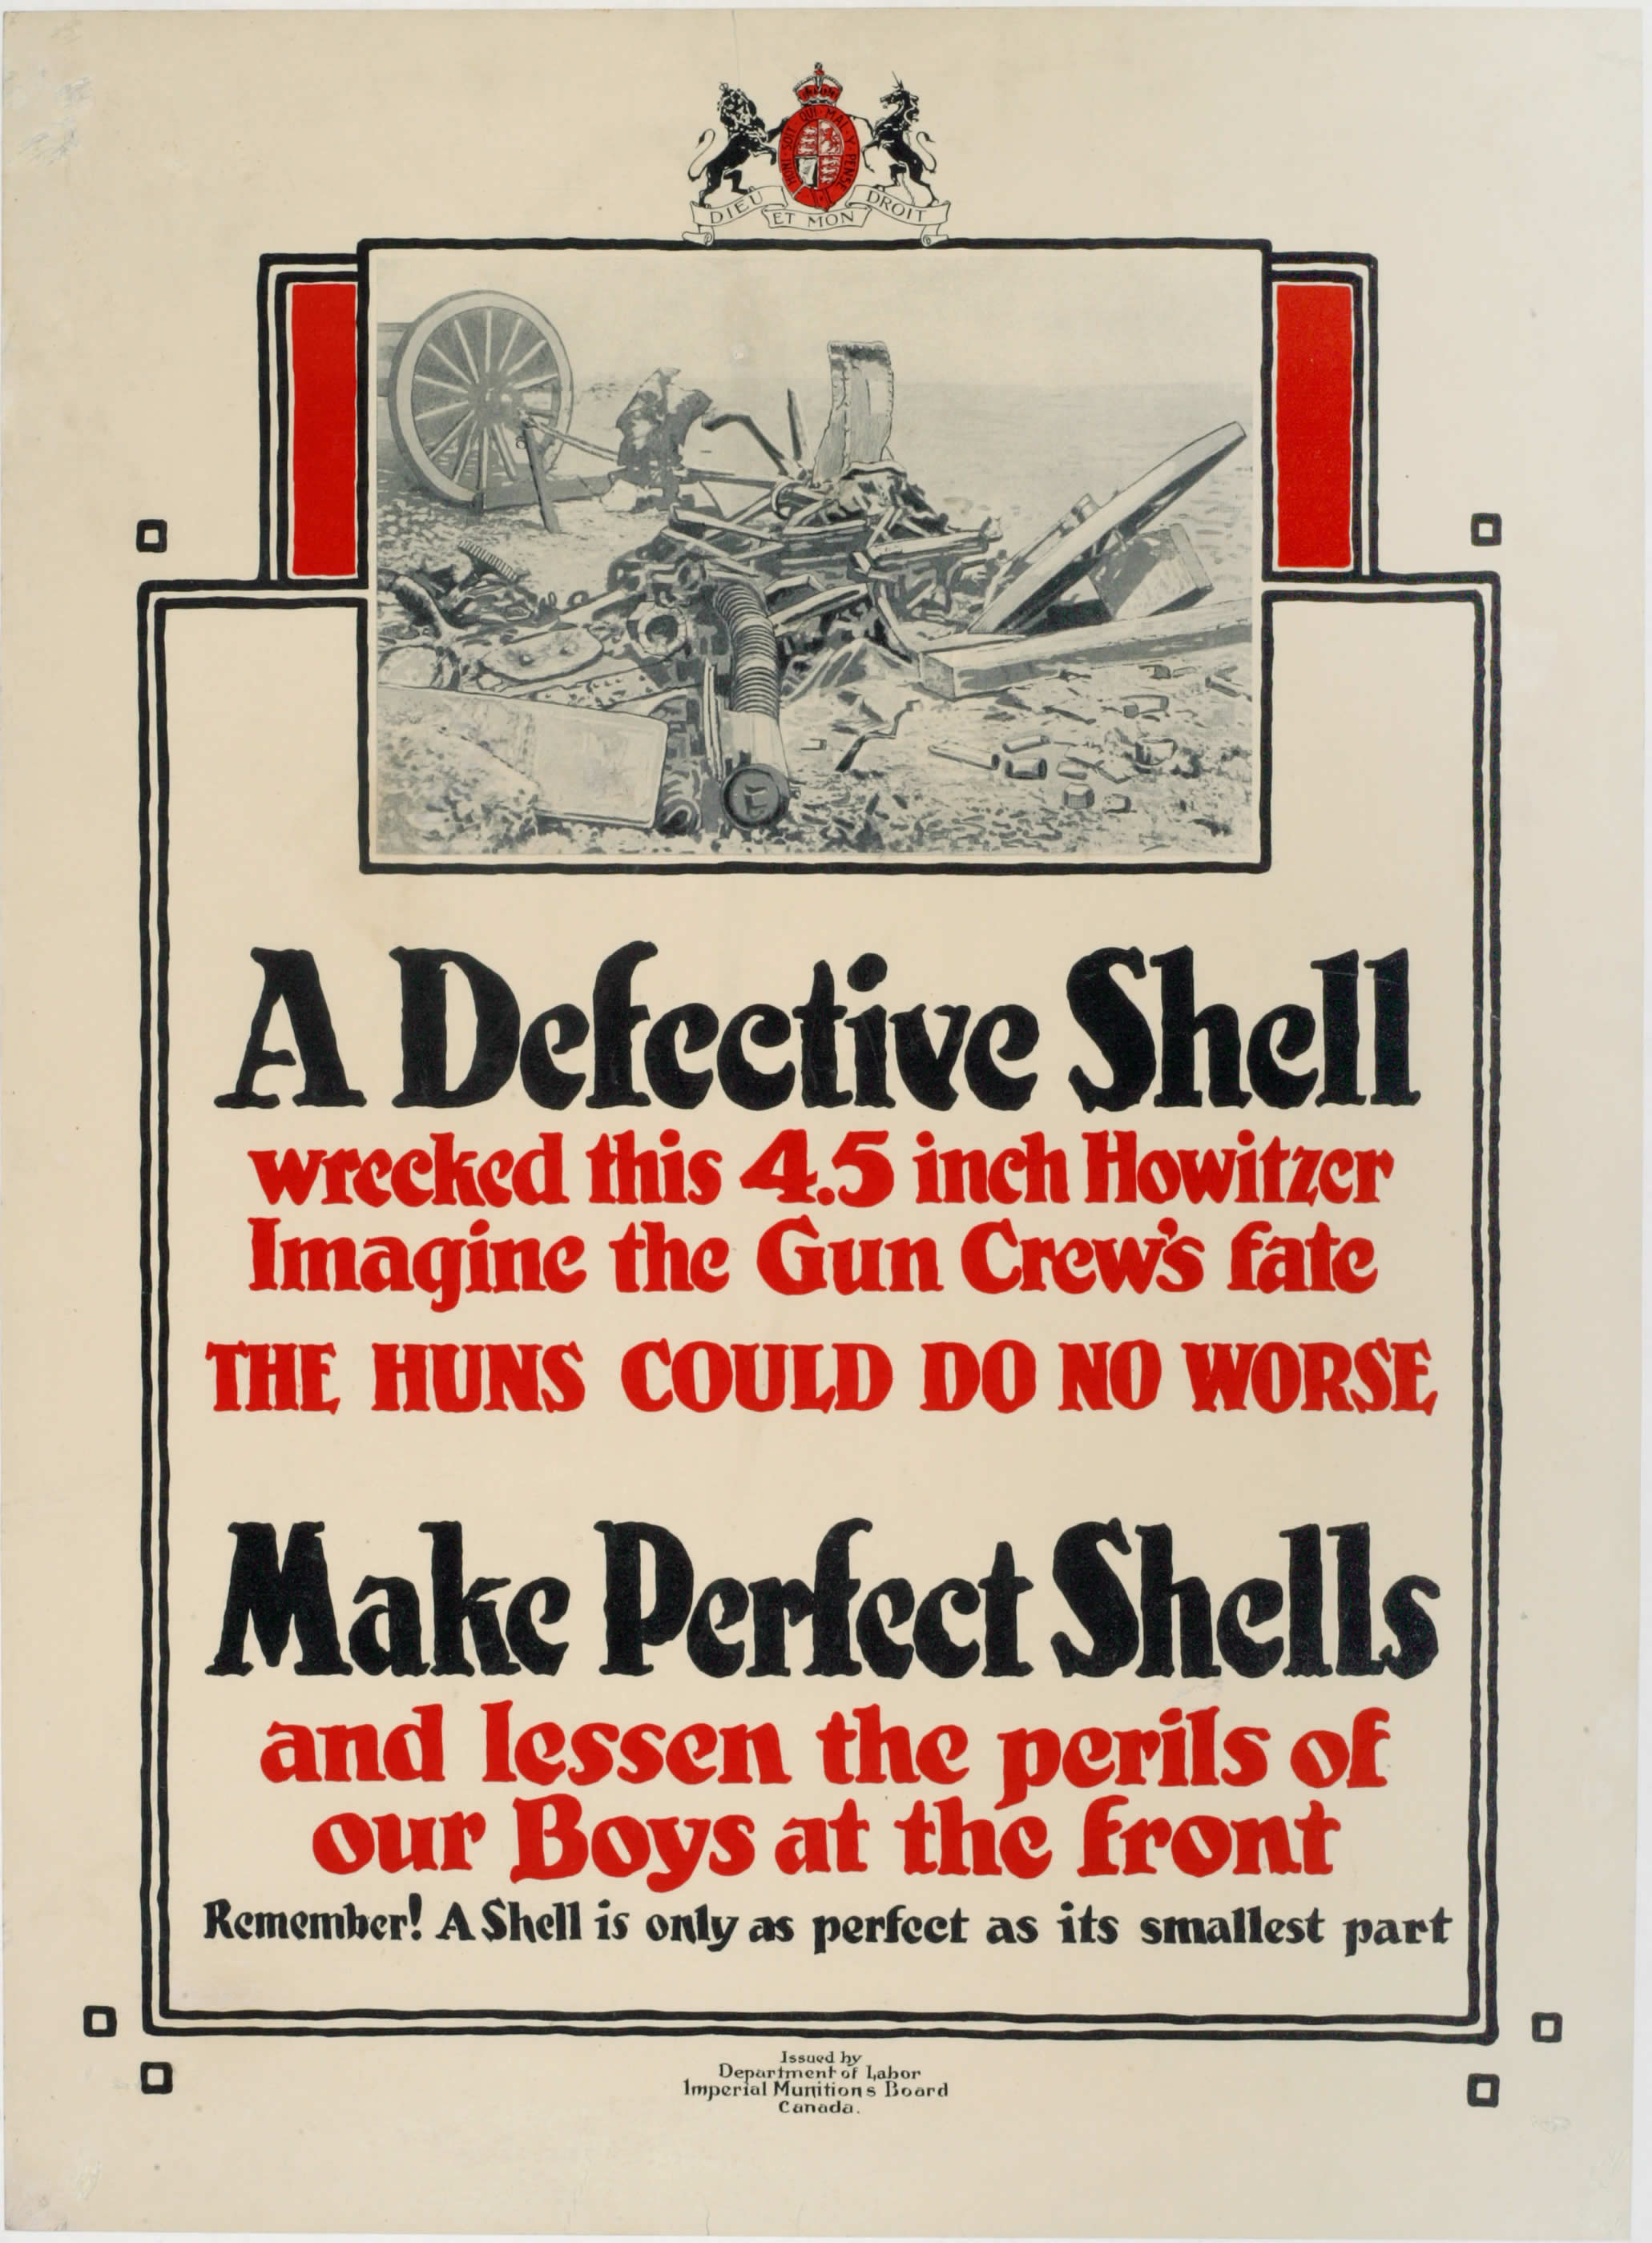 Make Perfect Shells